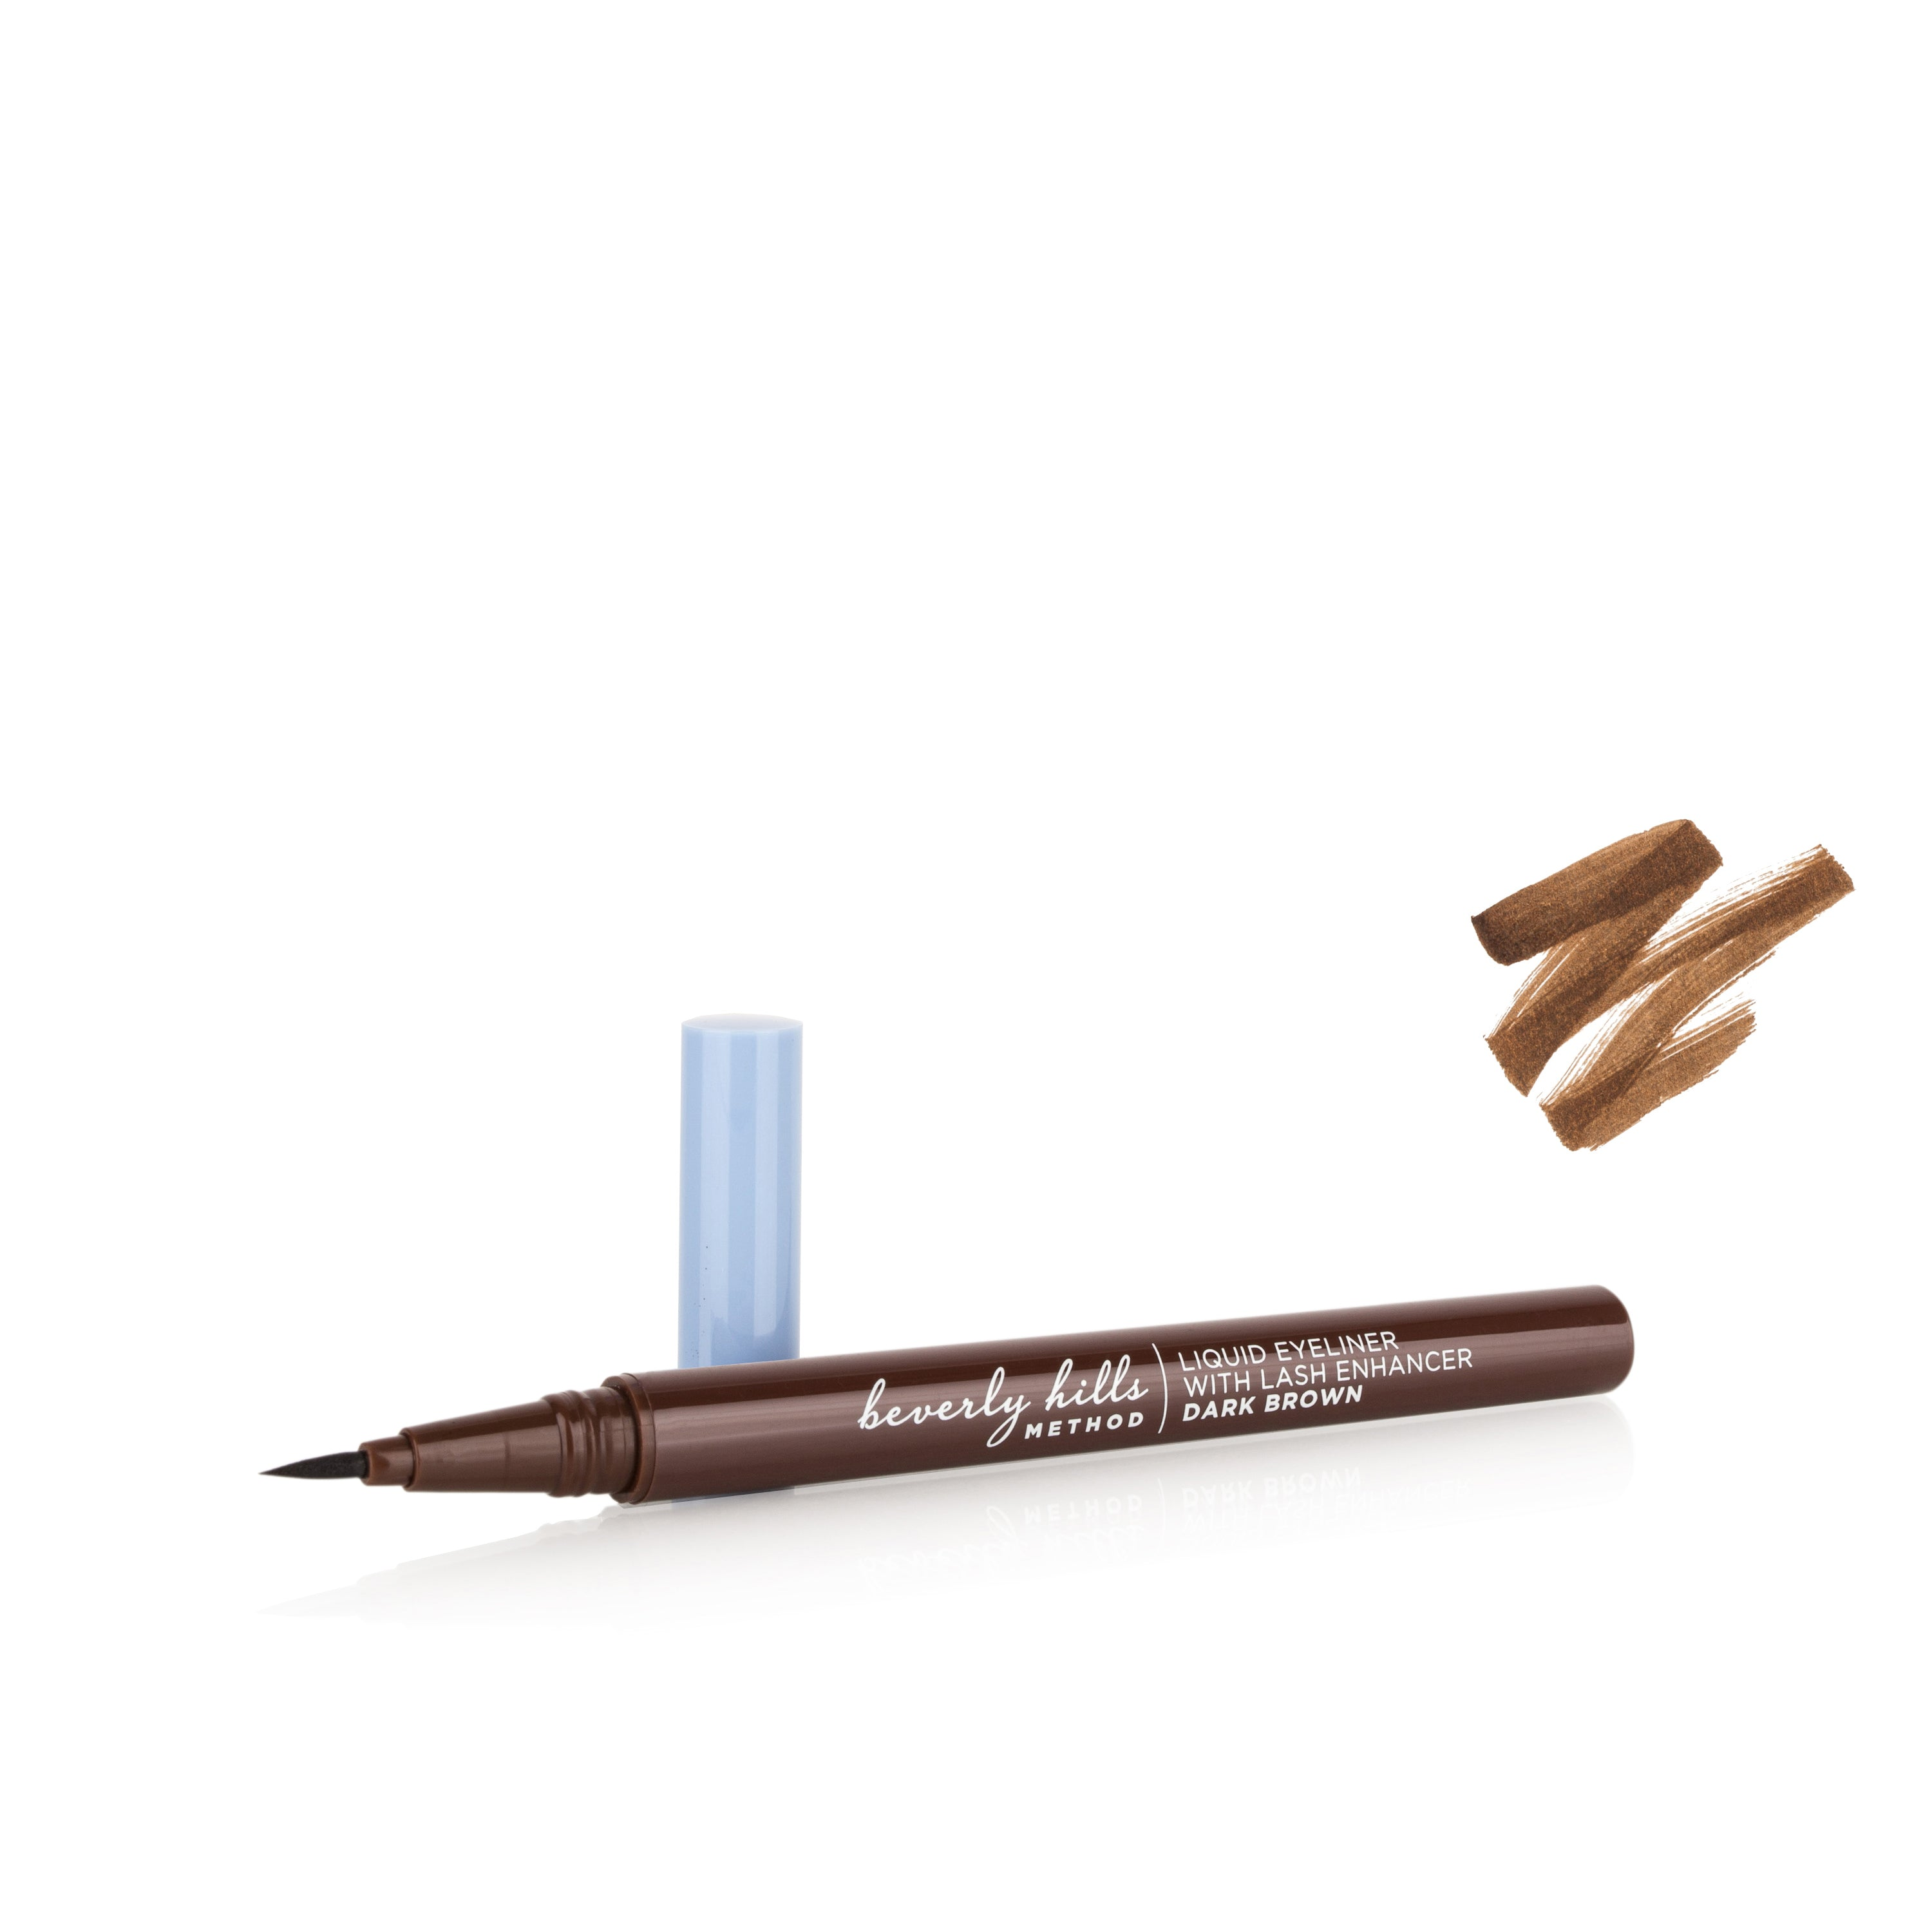 2in1 Liquid Eyeliner with Lash Growth Enhancer - Dark Brown